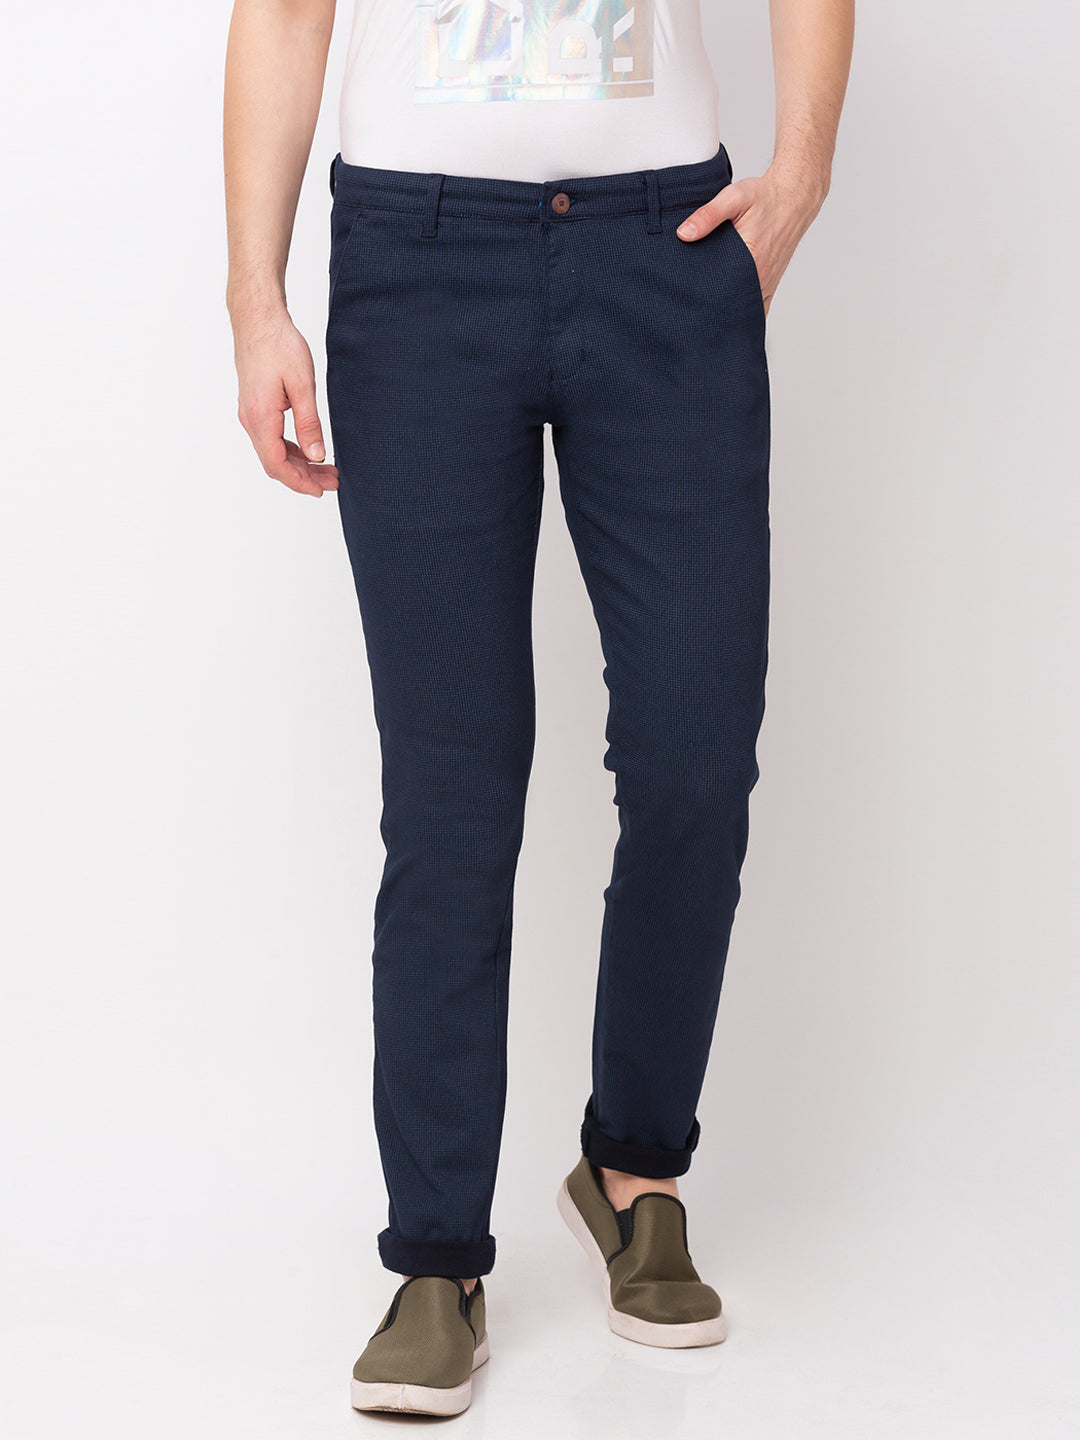 Globus Navy Blue Checked Chinos-1